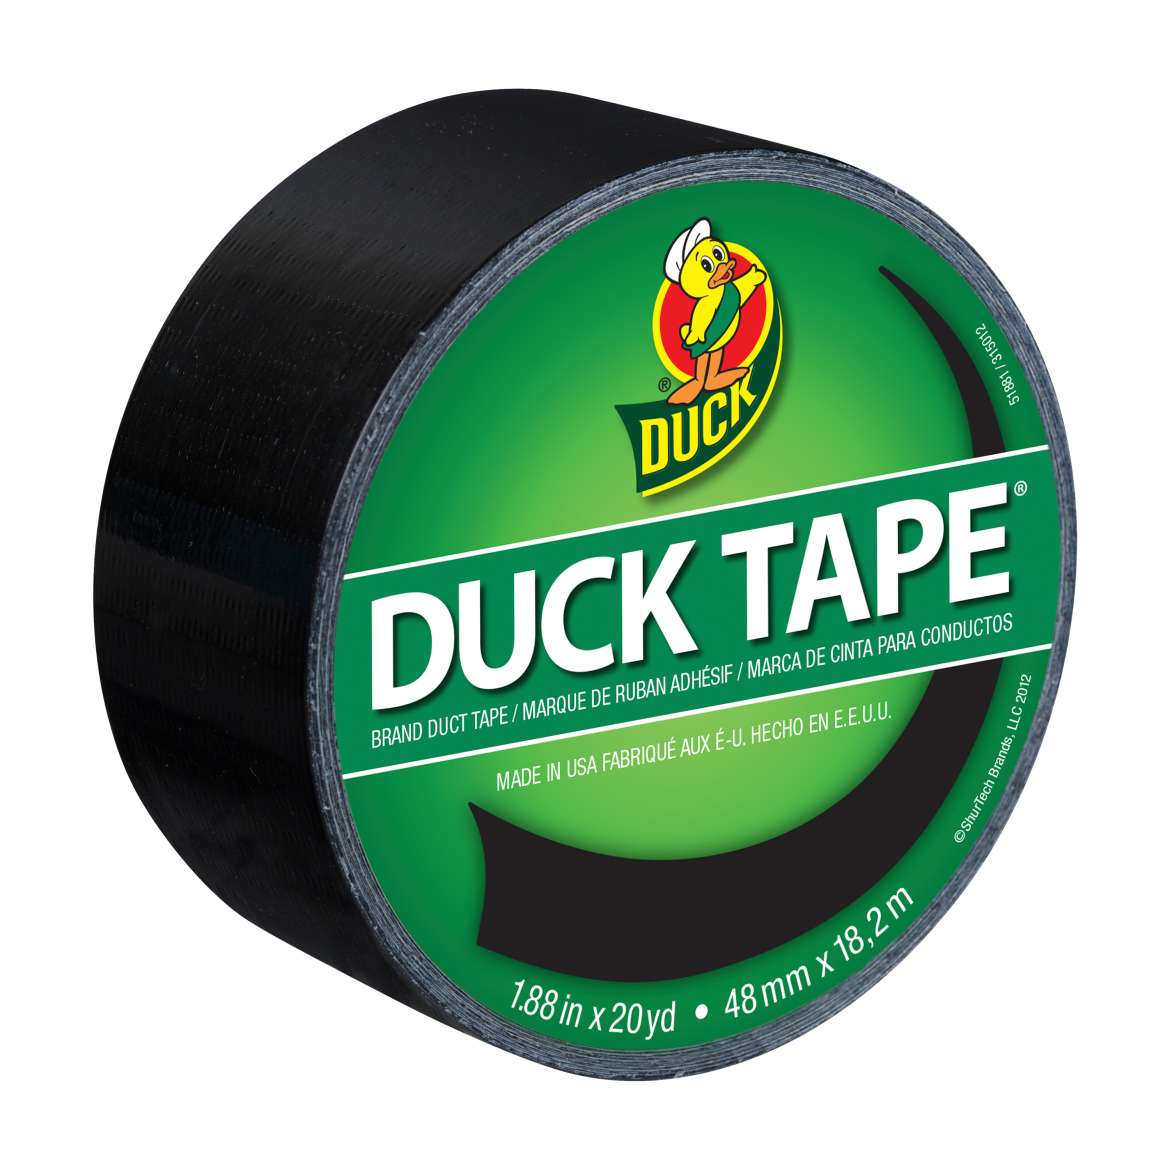 Color Duck Tape® Brand Duct Tape - Black, 1.88 in. x 20 yd. Image